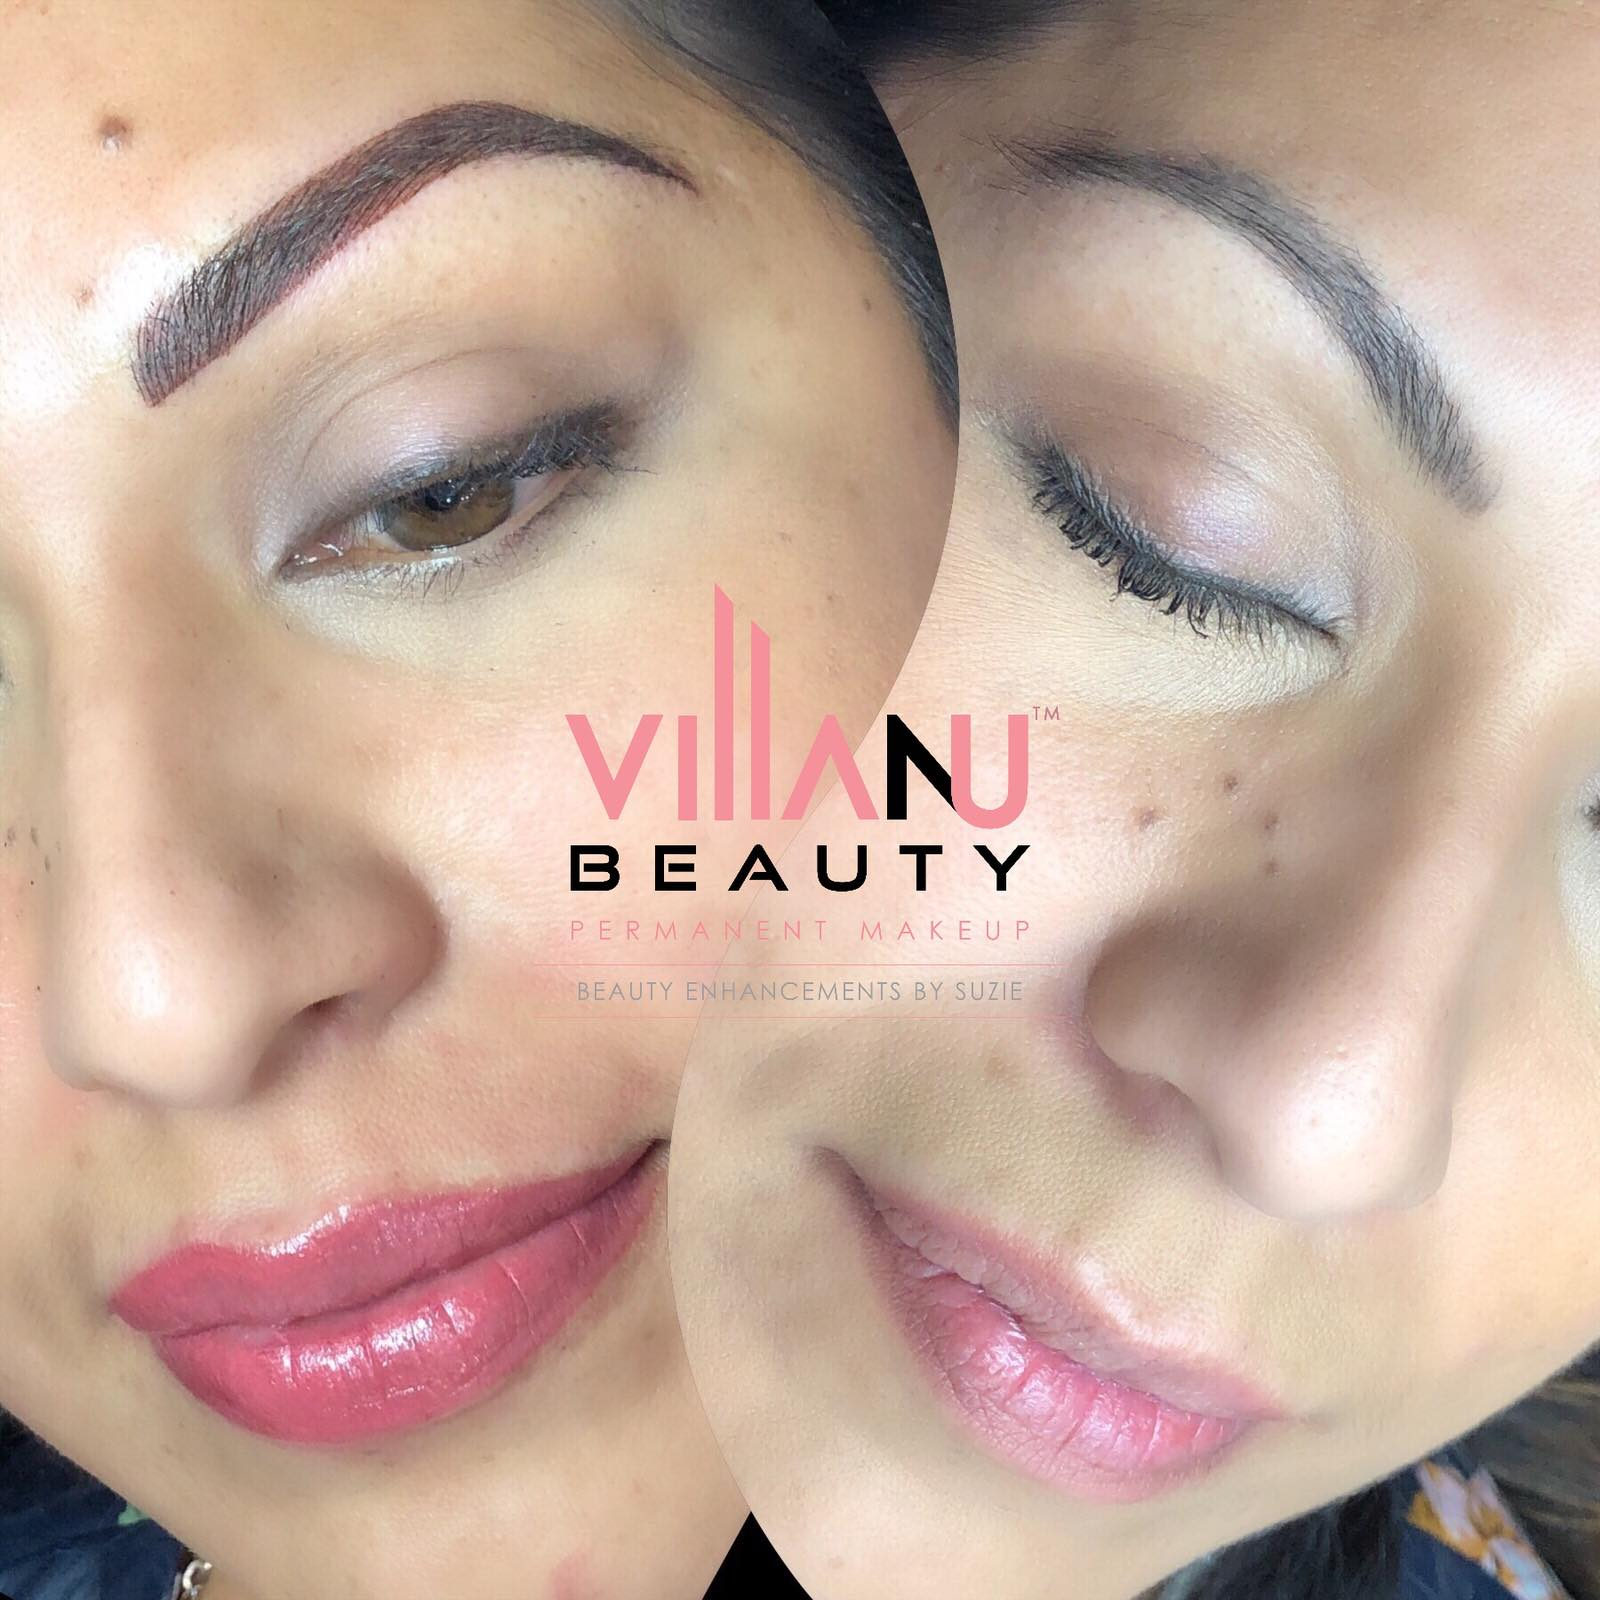 Beauty Enhancements by Suzie (VillaNu Beauty) reviews | Permanent Makeup at 11553 Foothill Boulevard Ste 101 - Rancho Cucamonga CA